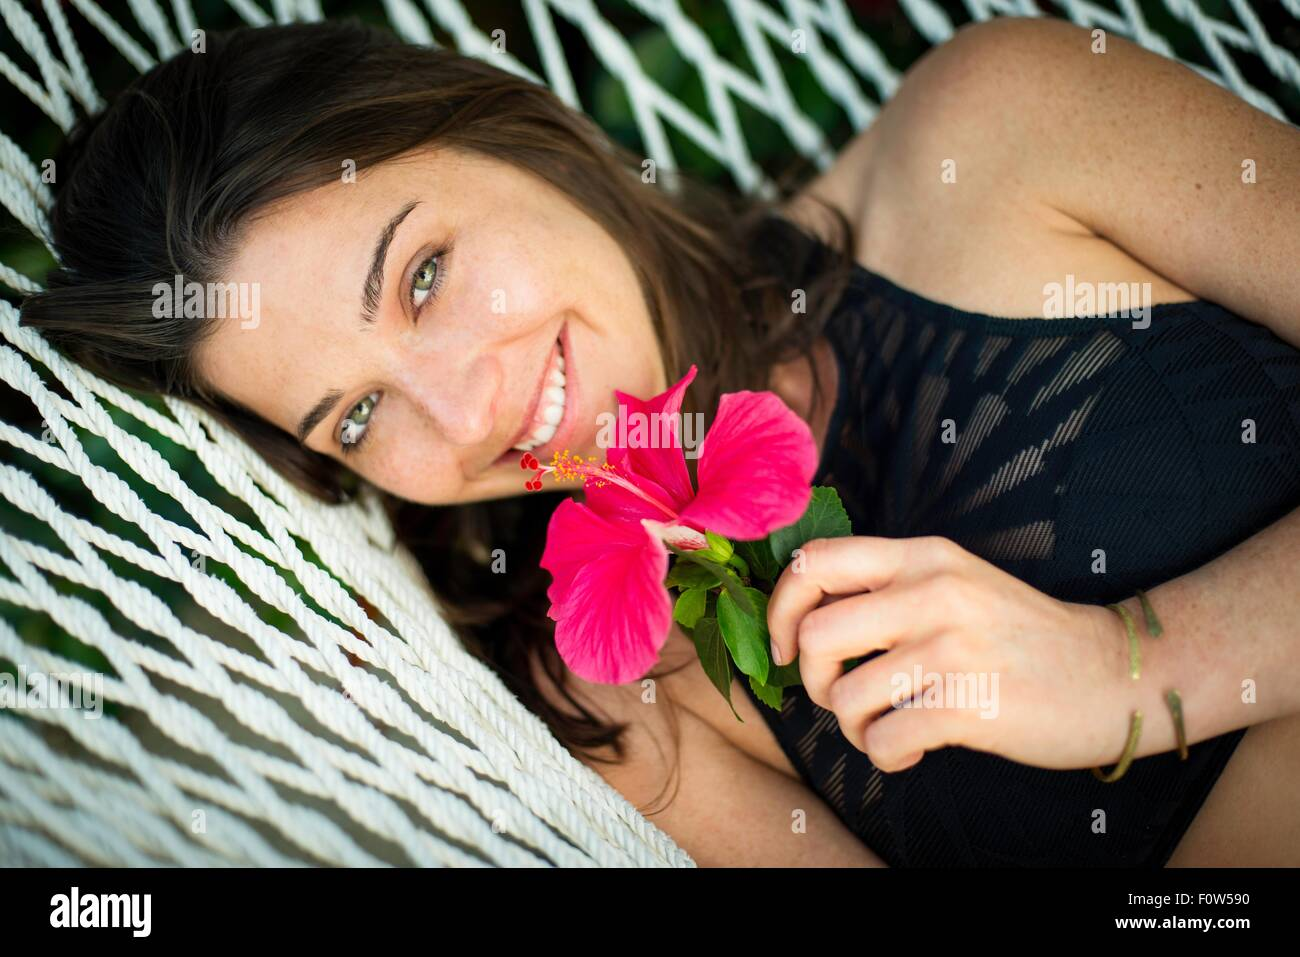 Portrait of young woman on hammock with pink flower - Stock Image